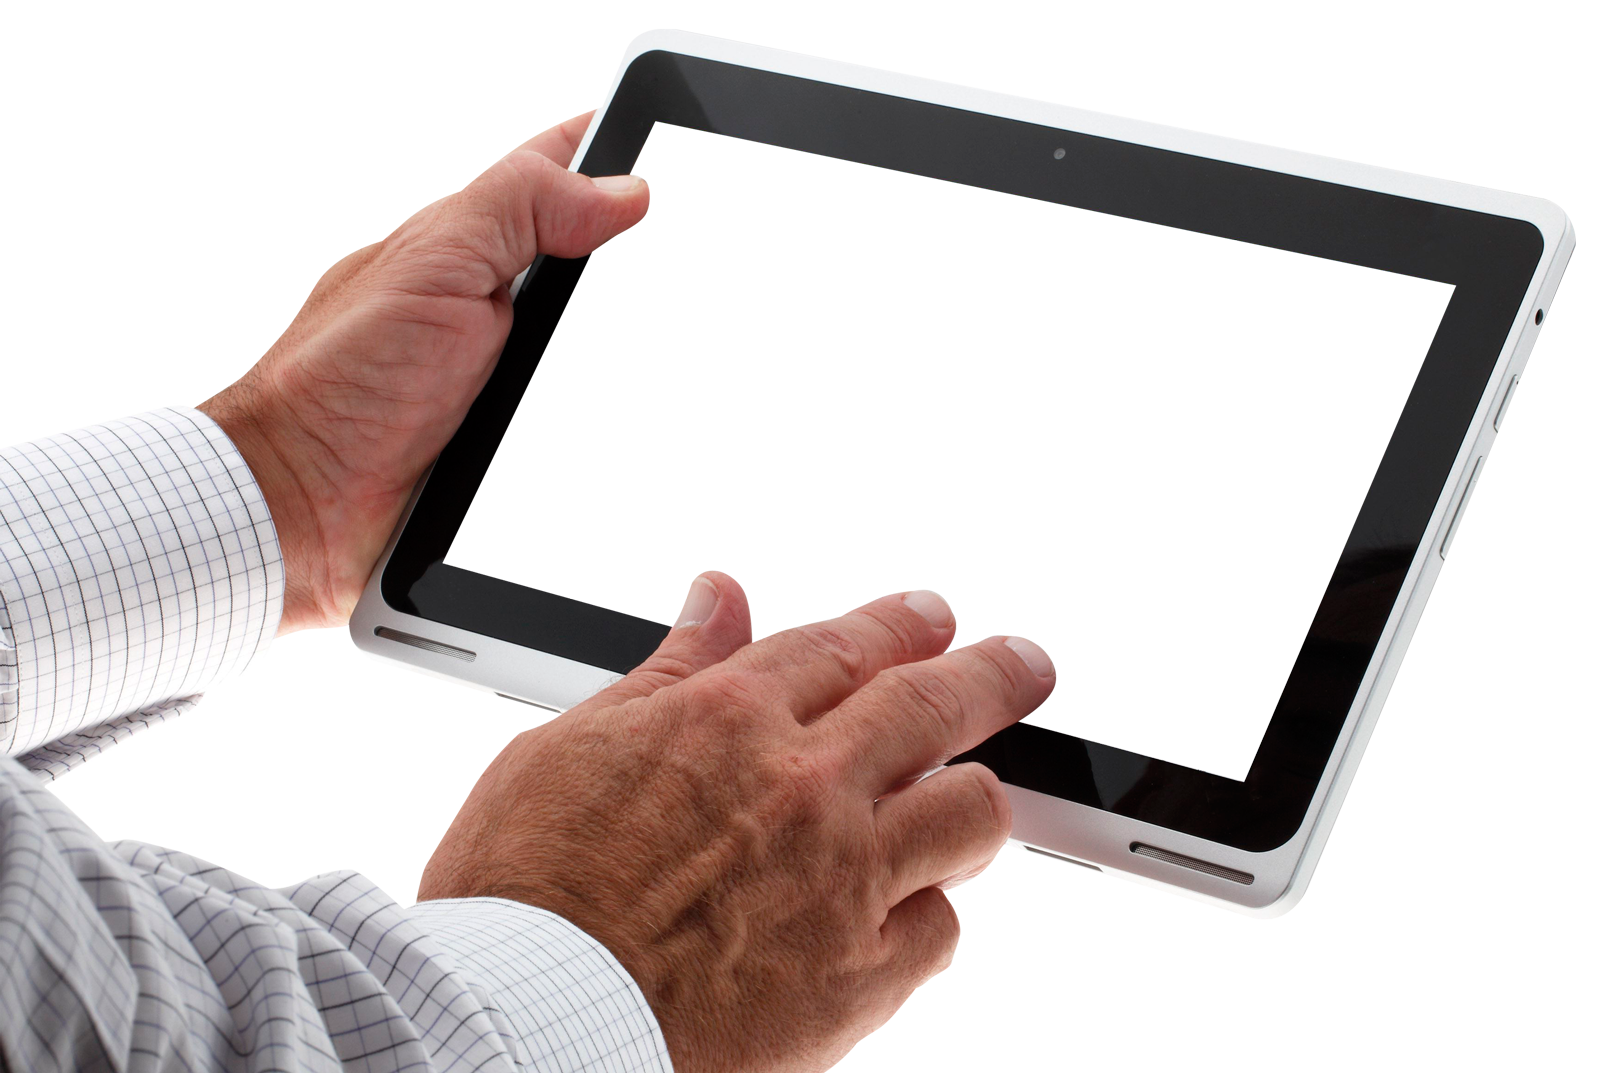 Hand Using Tablet PNG Image